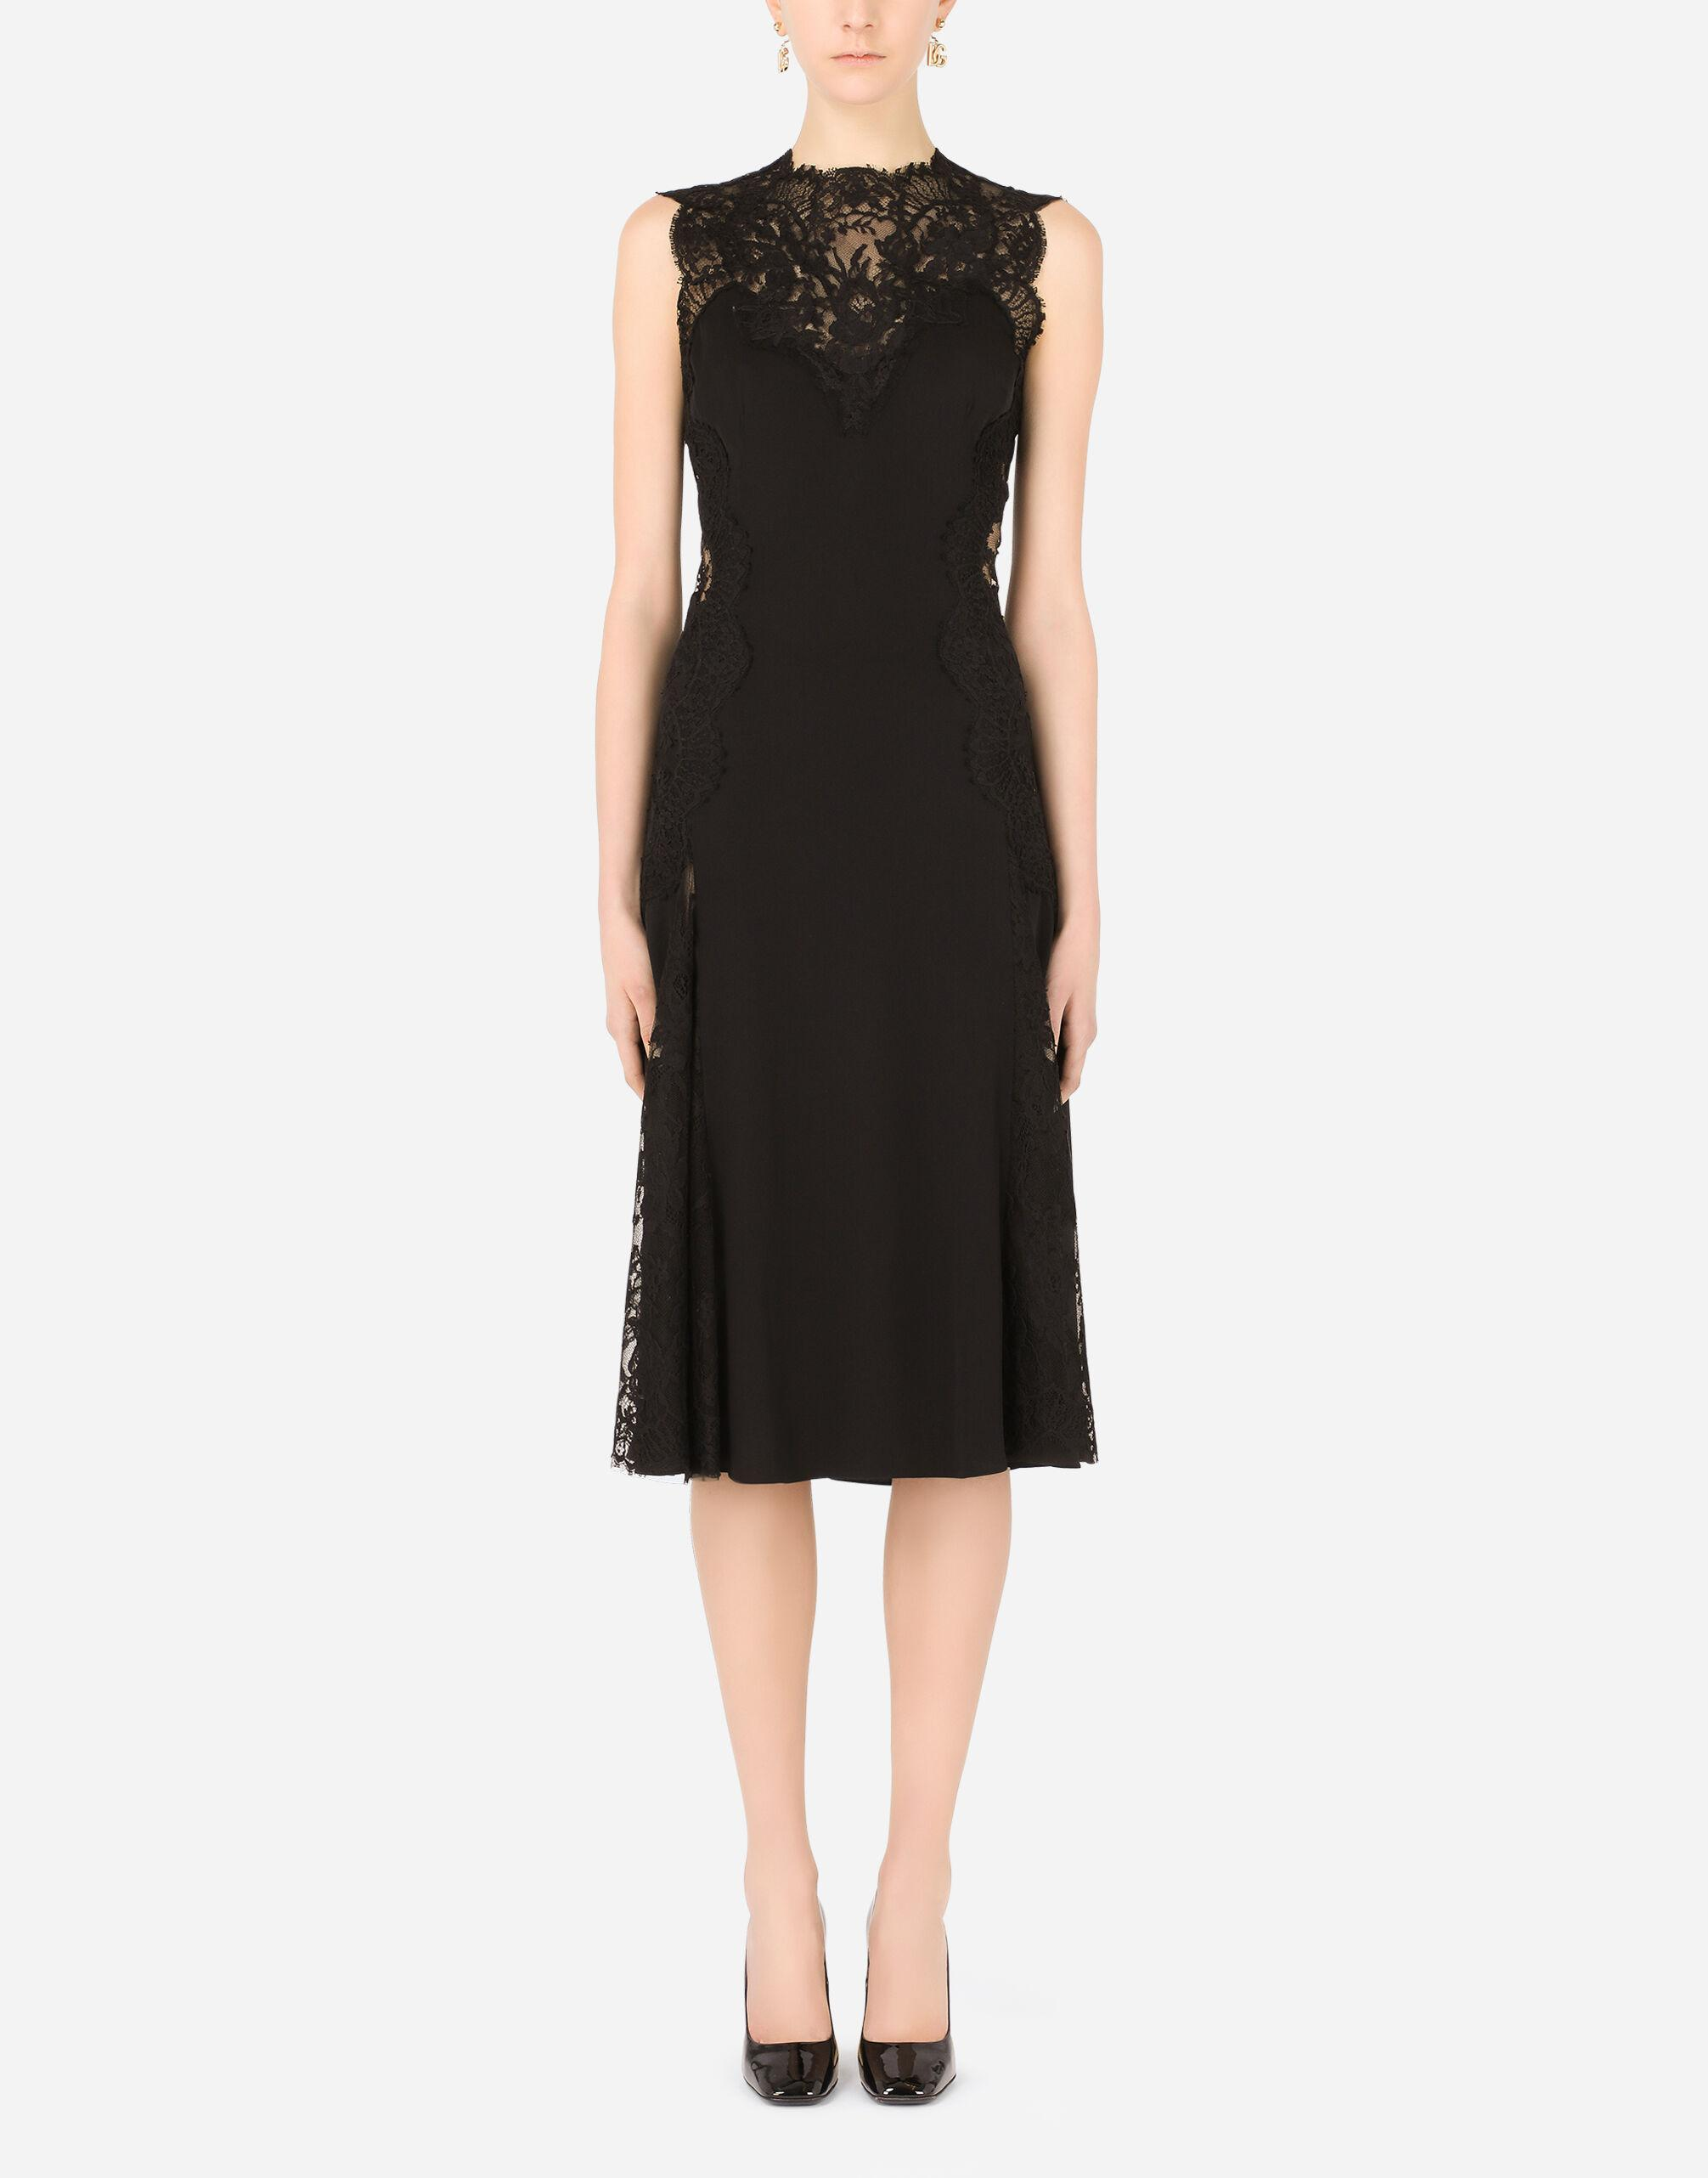 Charmeuse calf-length skirt with Chantilly lace inserts